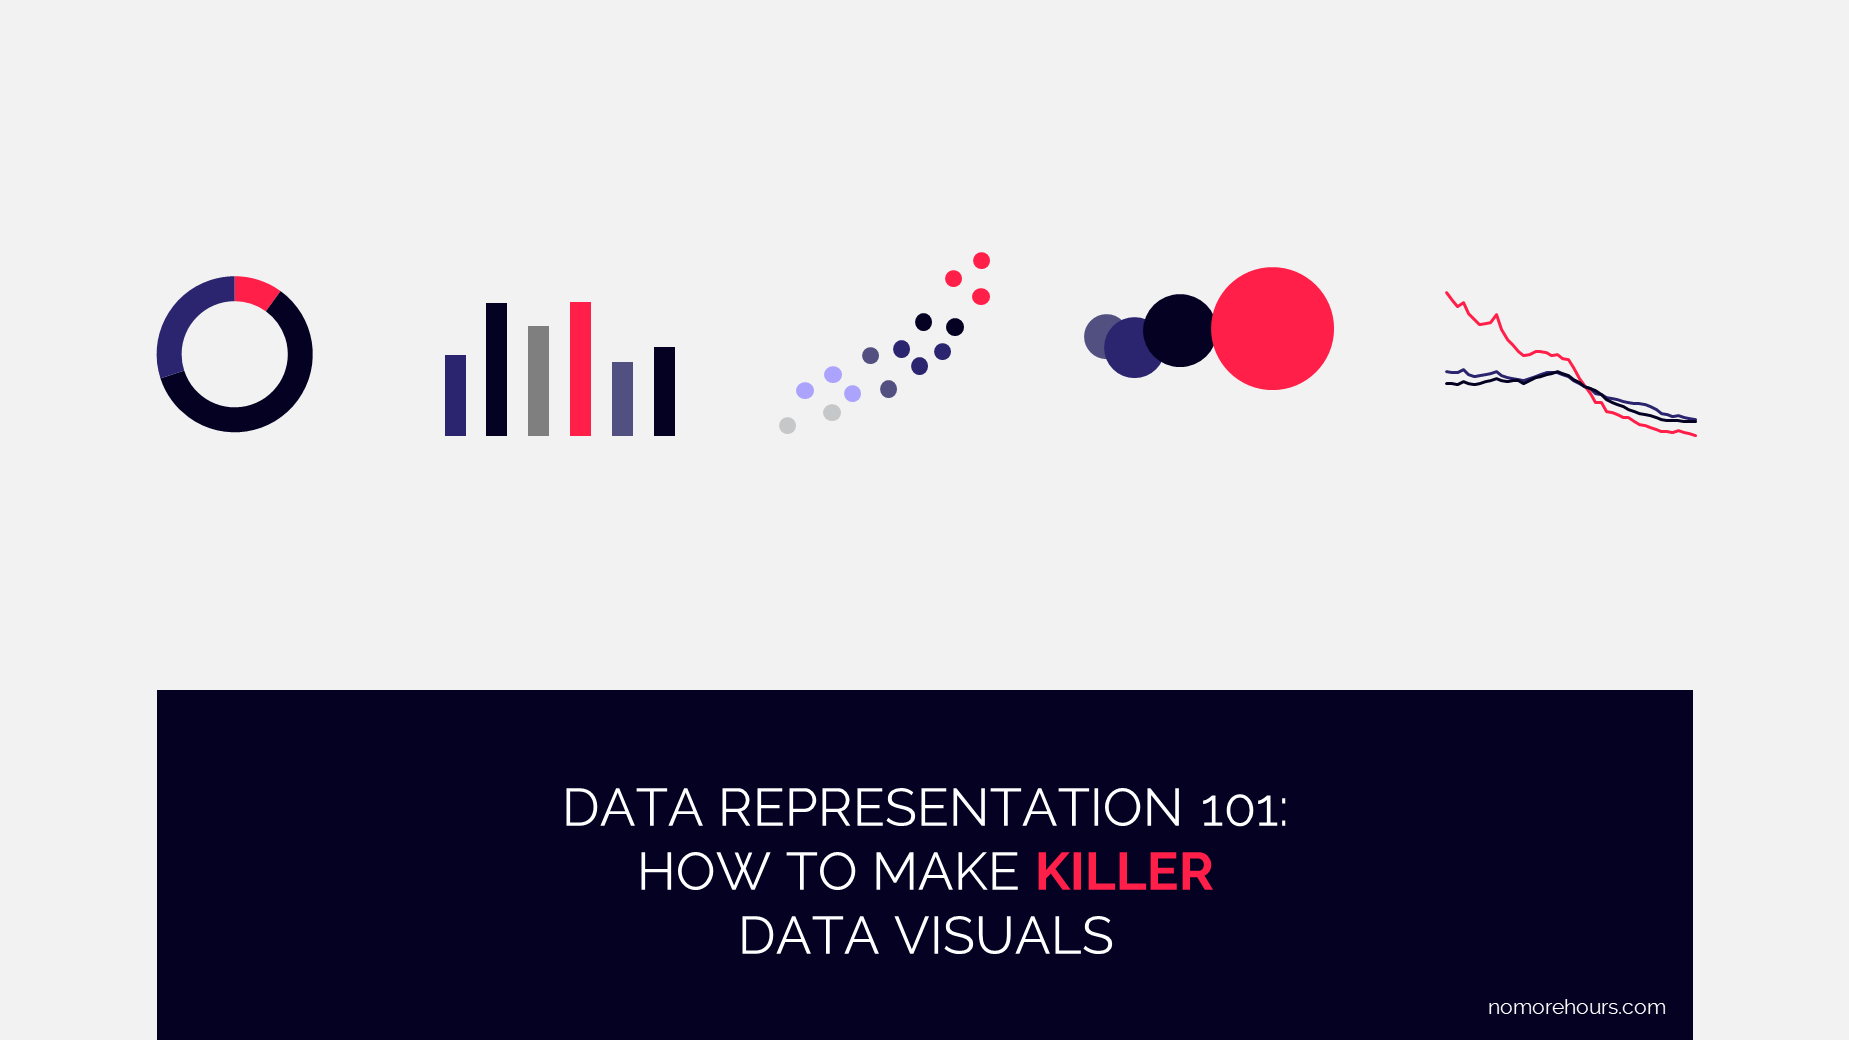 Frontpage of no-more's ebook on how to make killer data visuals